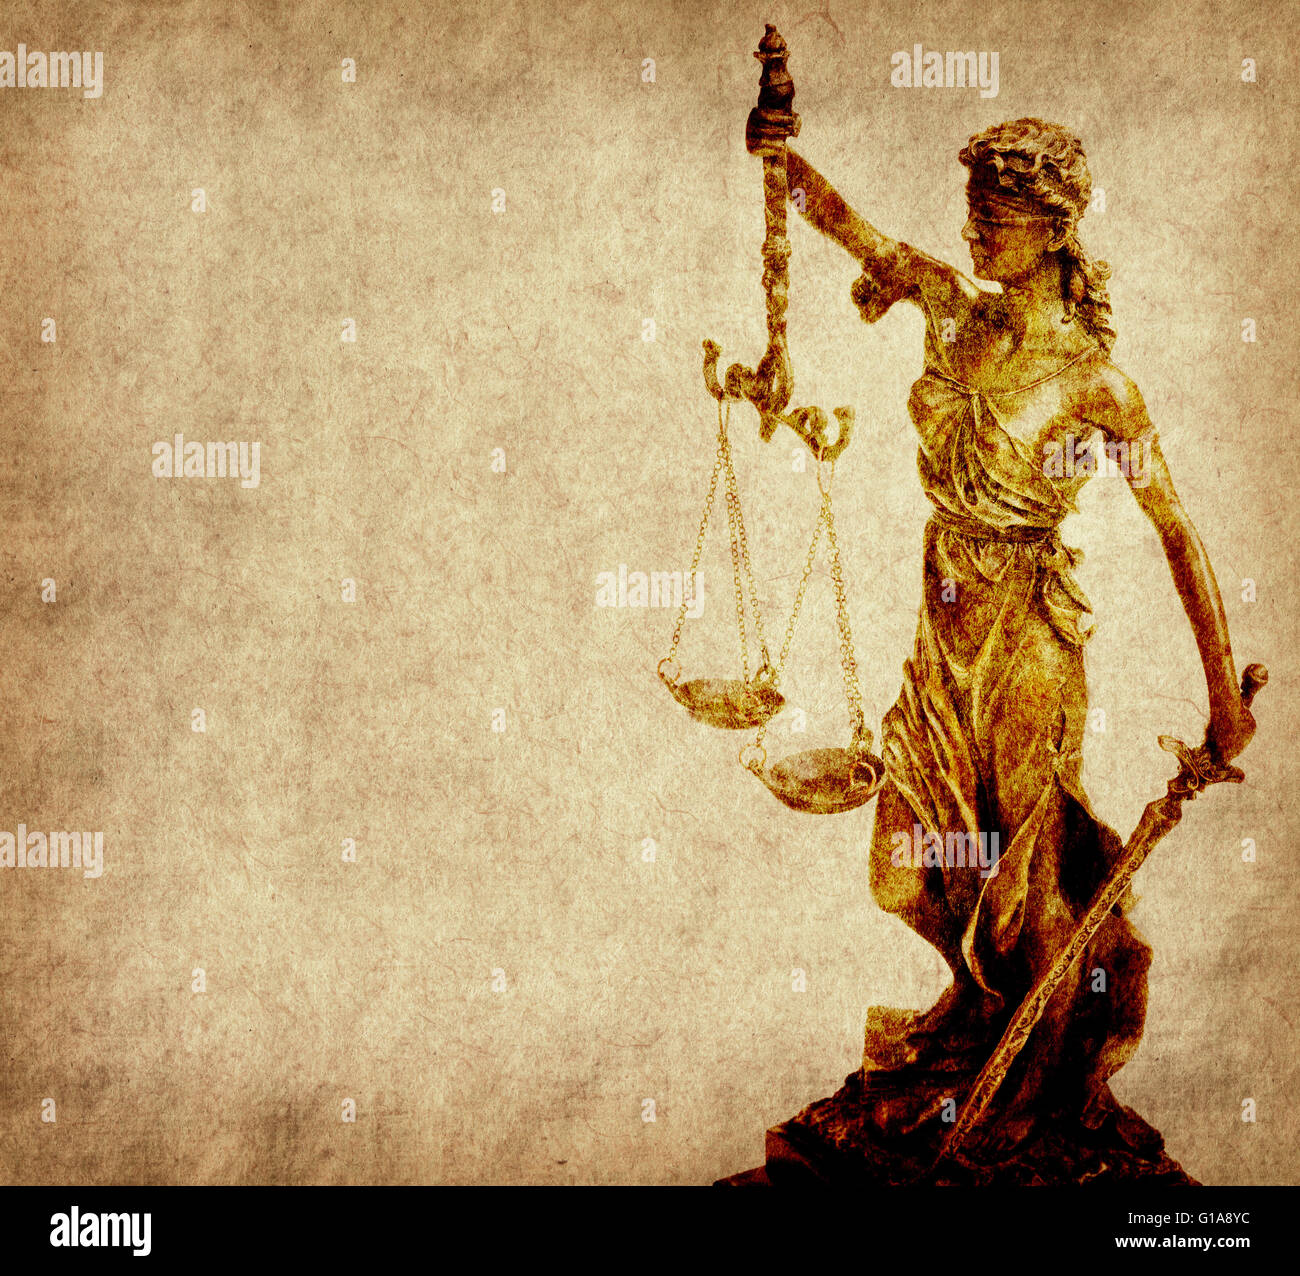 Statue of justice on old paper background, law concept - Stock Image